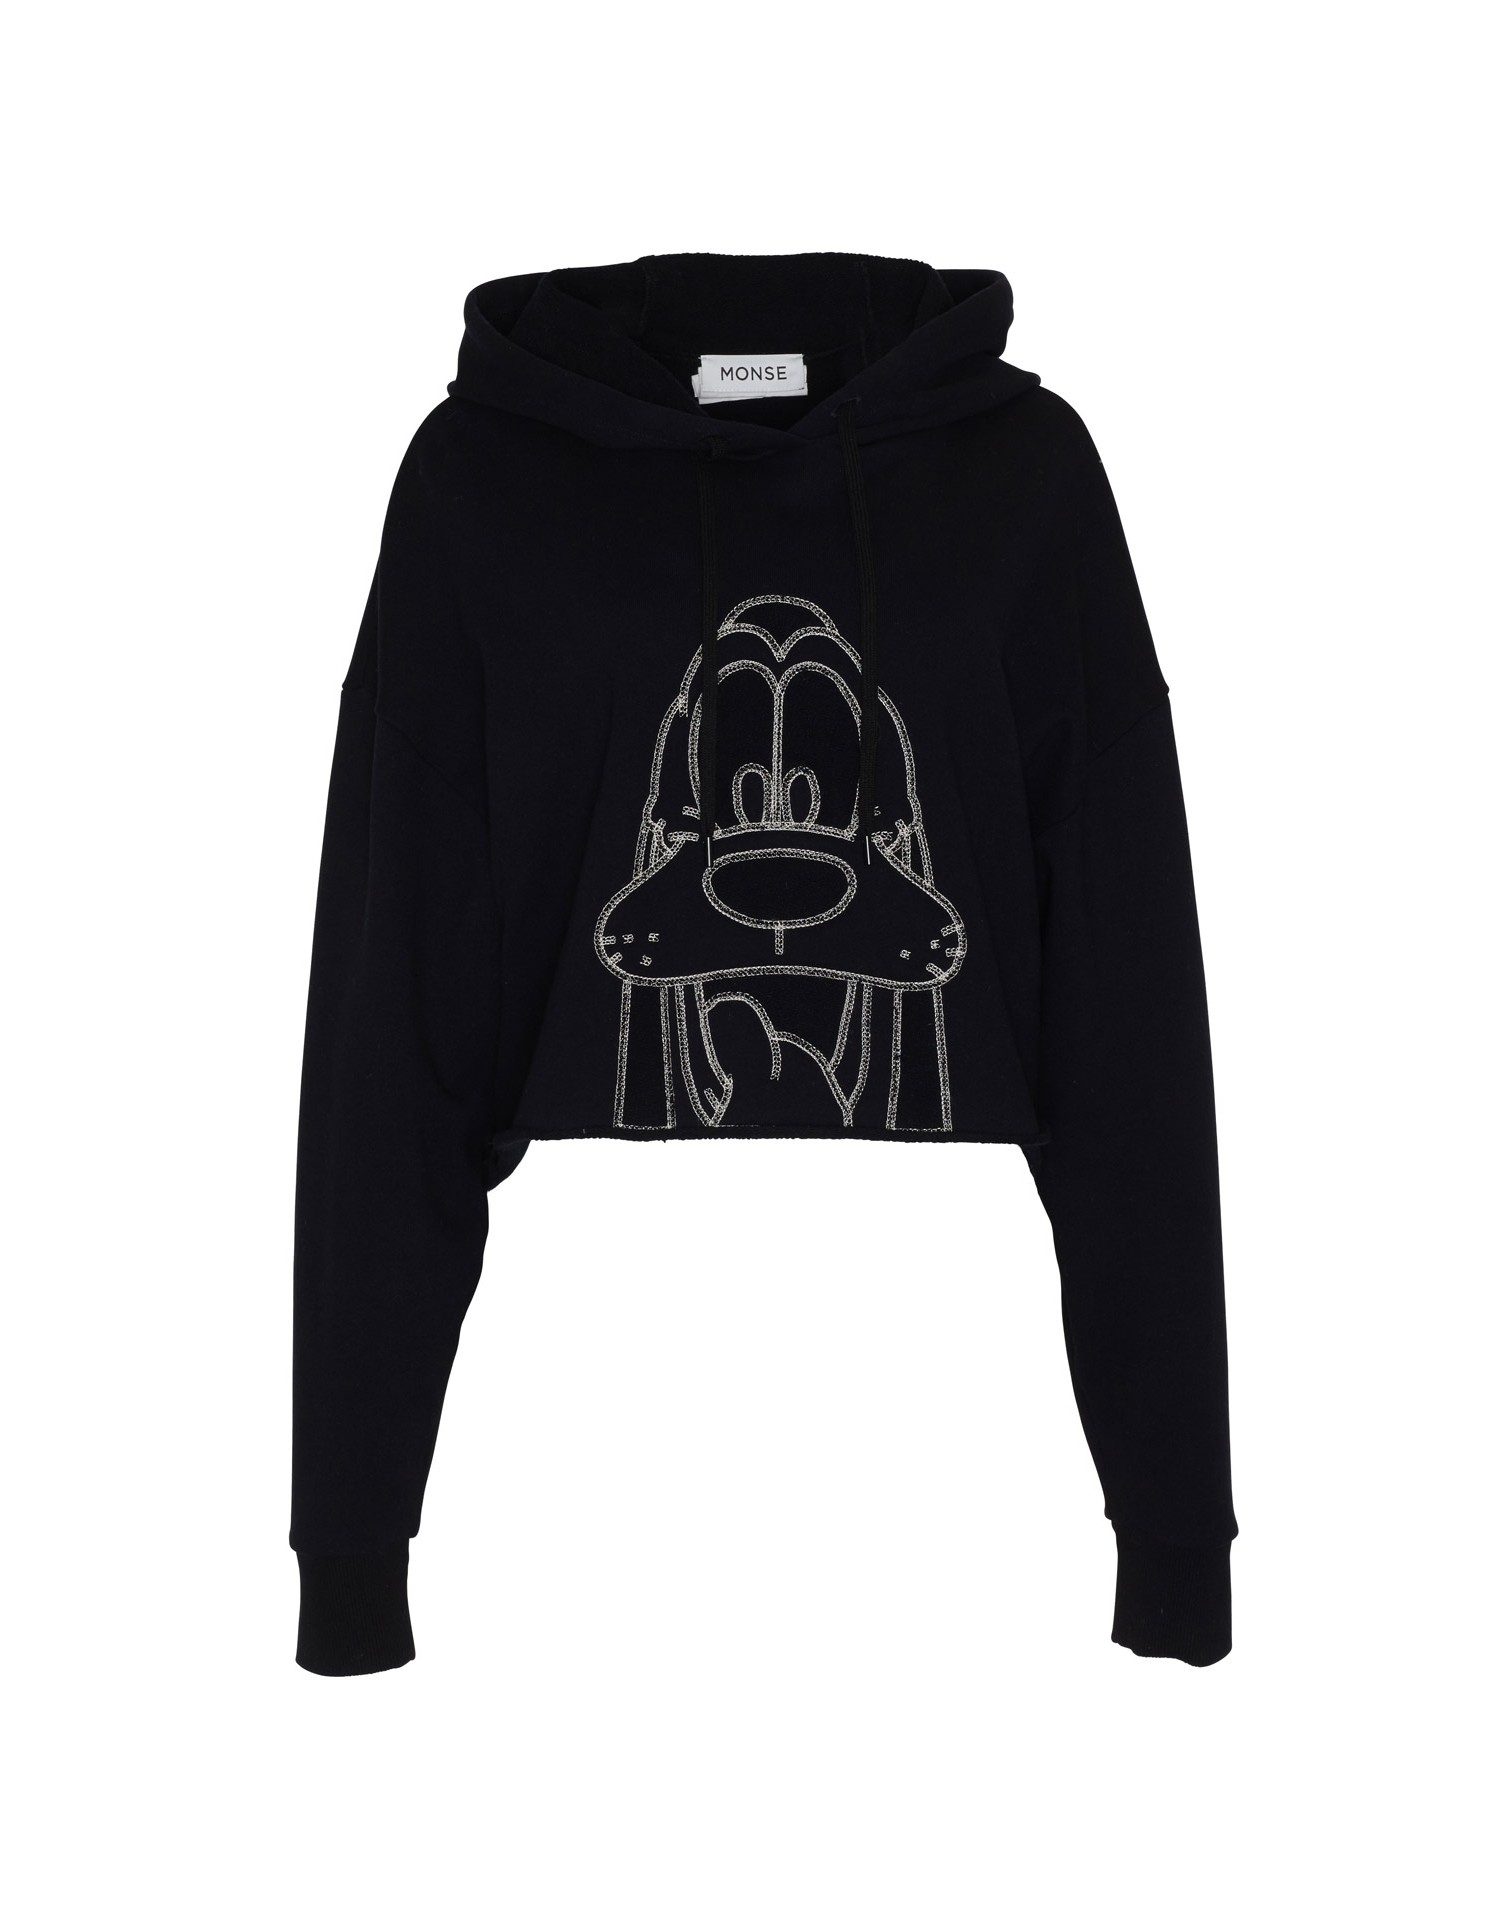 MONSE Pluto Cropped Hoodie in Black Front